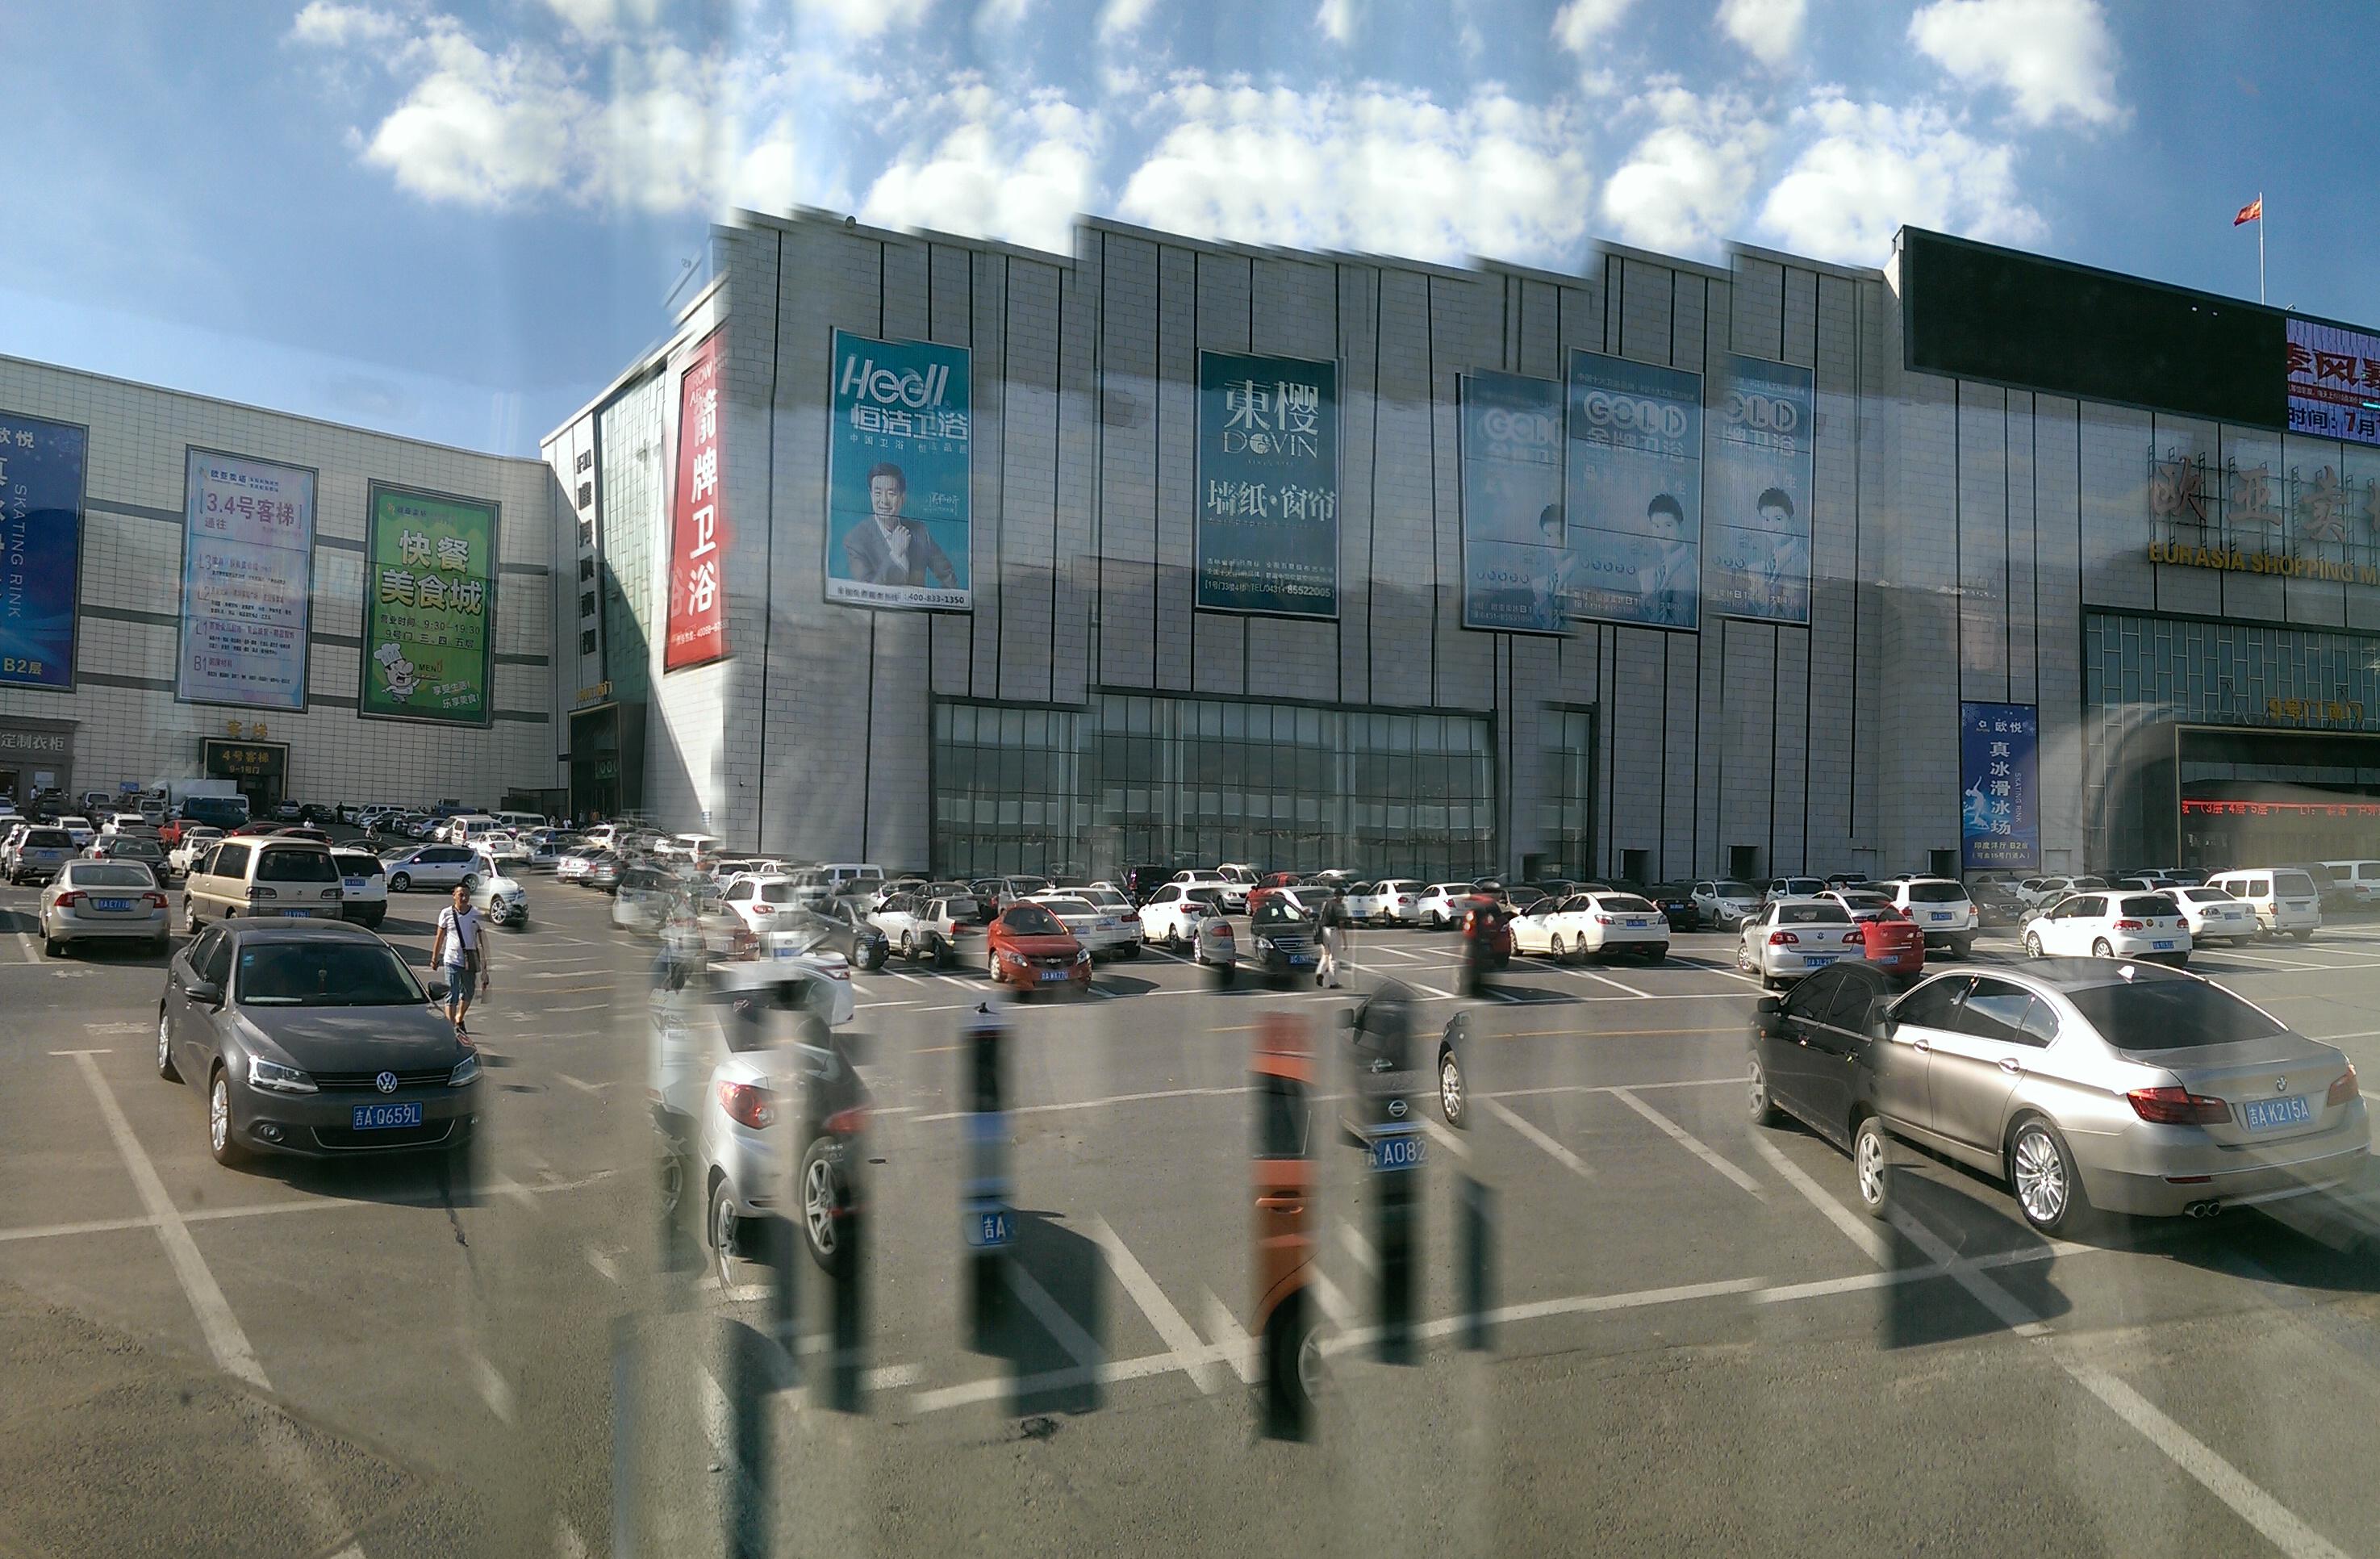 [trippy panorama of a shopping mall]